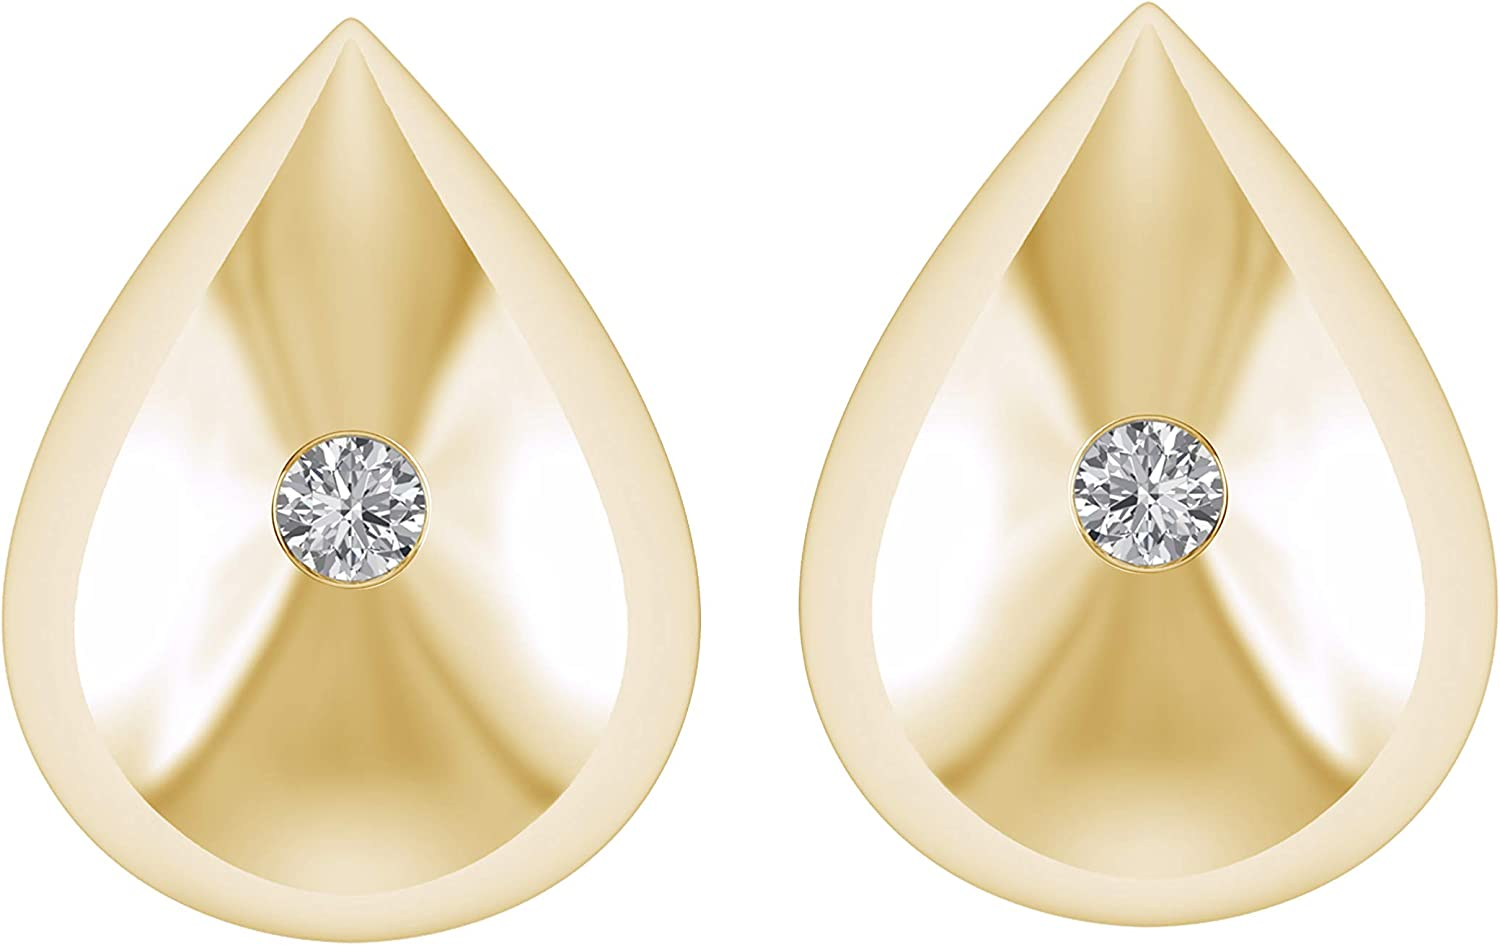 G-H Color, I1-I2 Clarity 925 Sterling Silver W// 0.12 Ct Natural Diamond Bow Tie Stud Earrings Sweet Gift For Girls